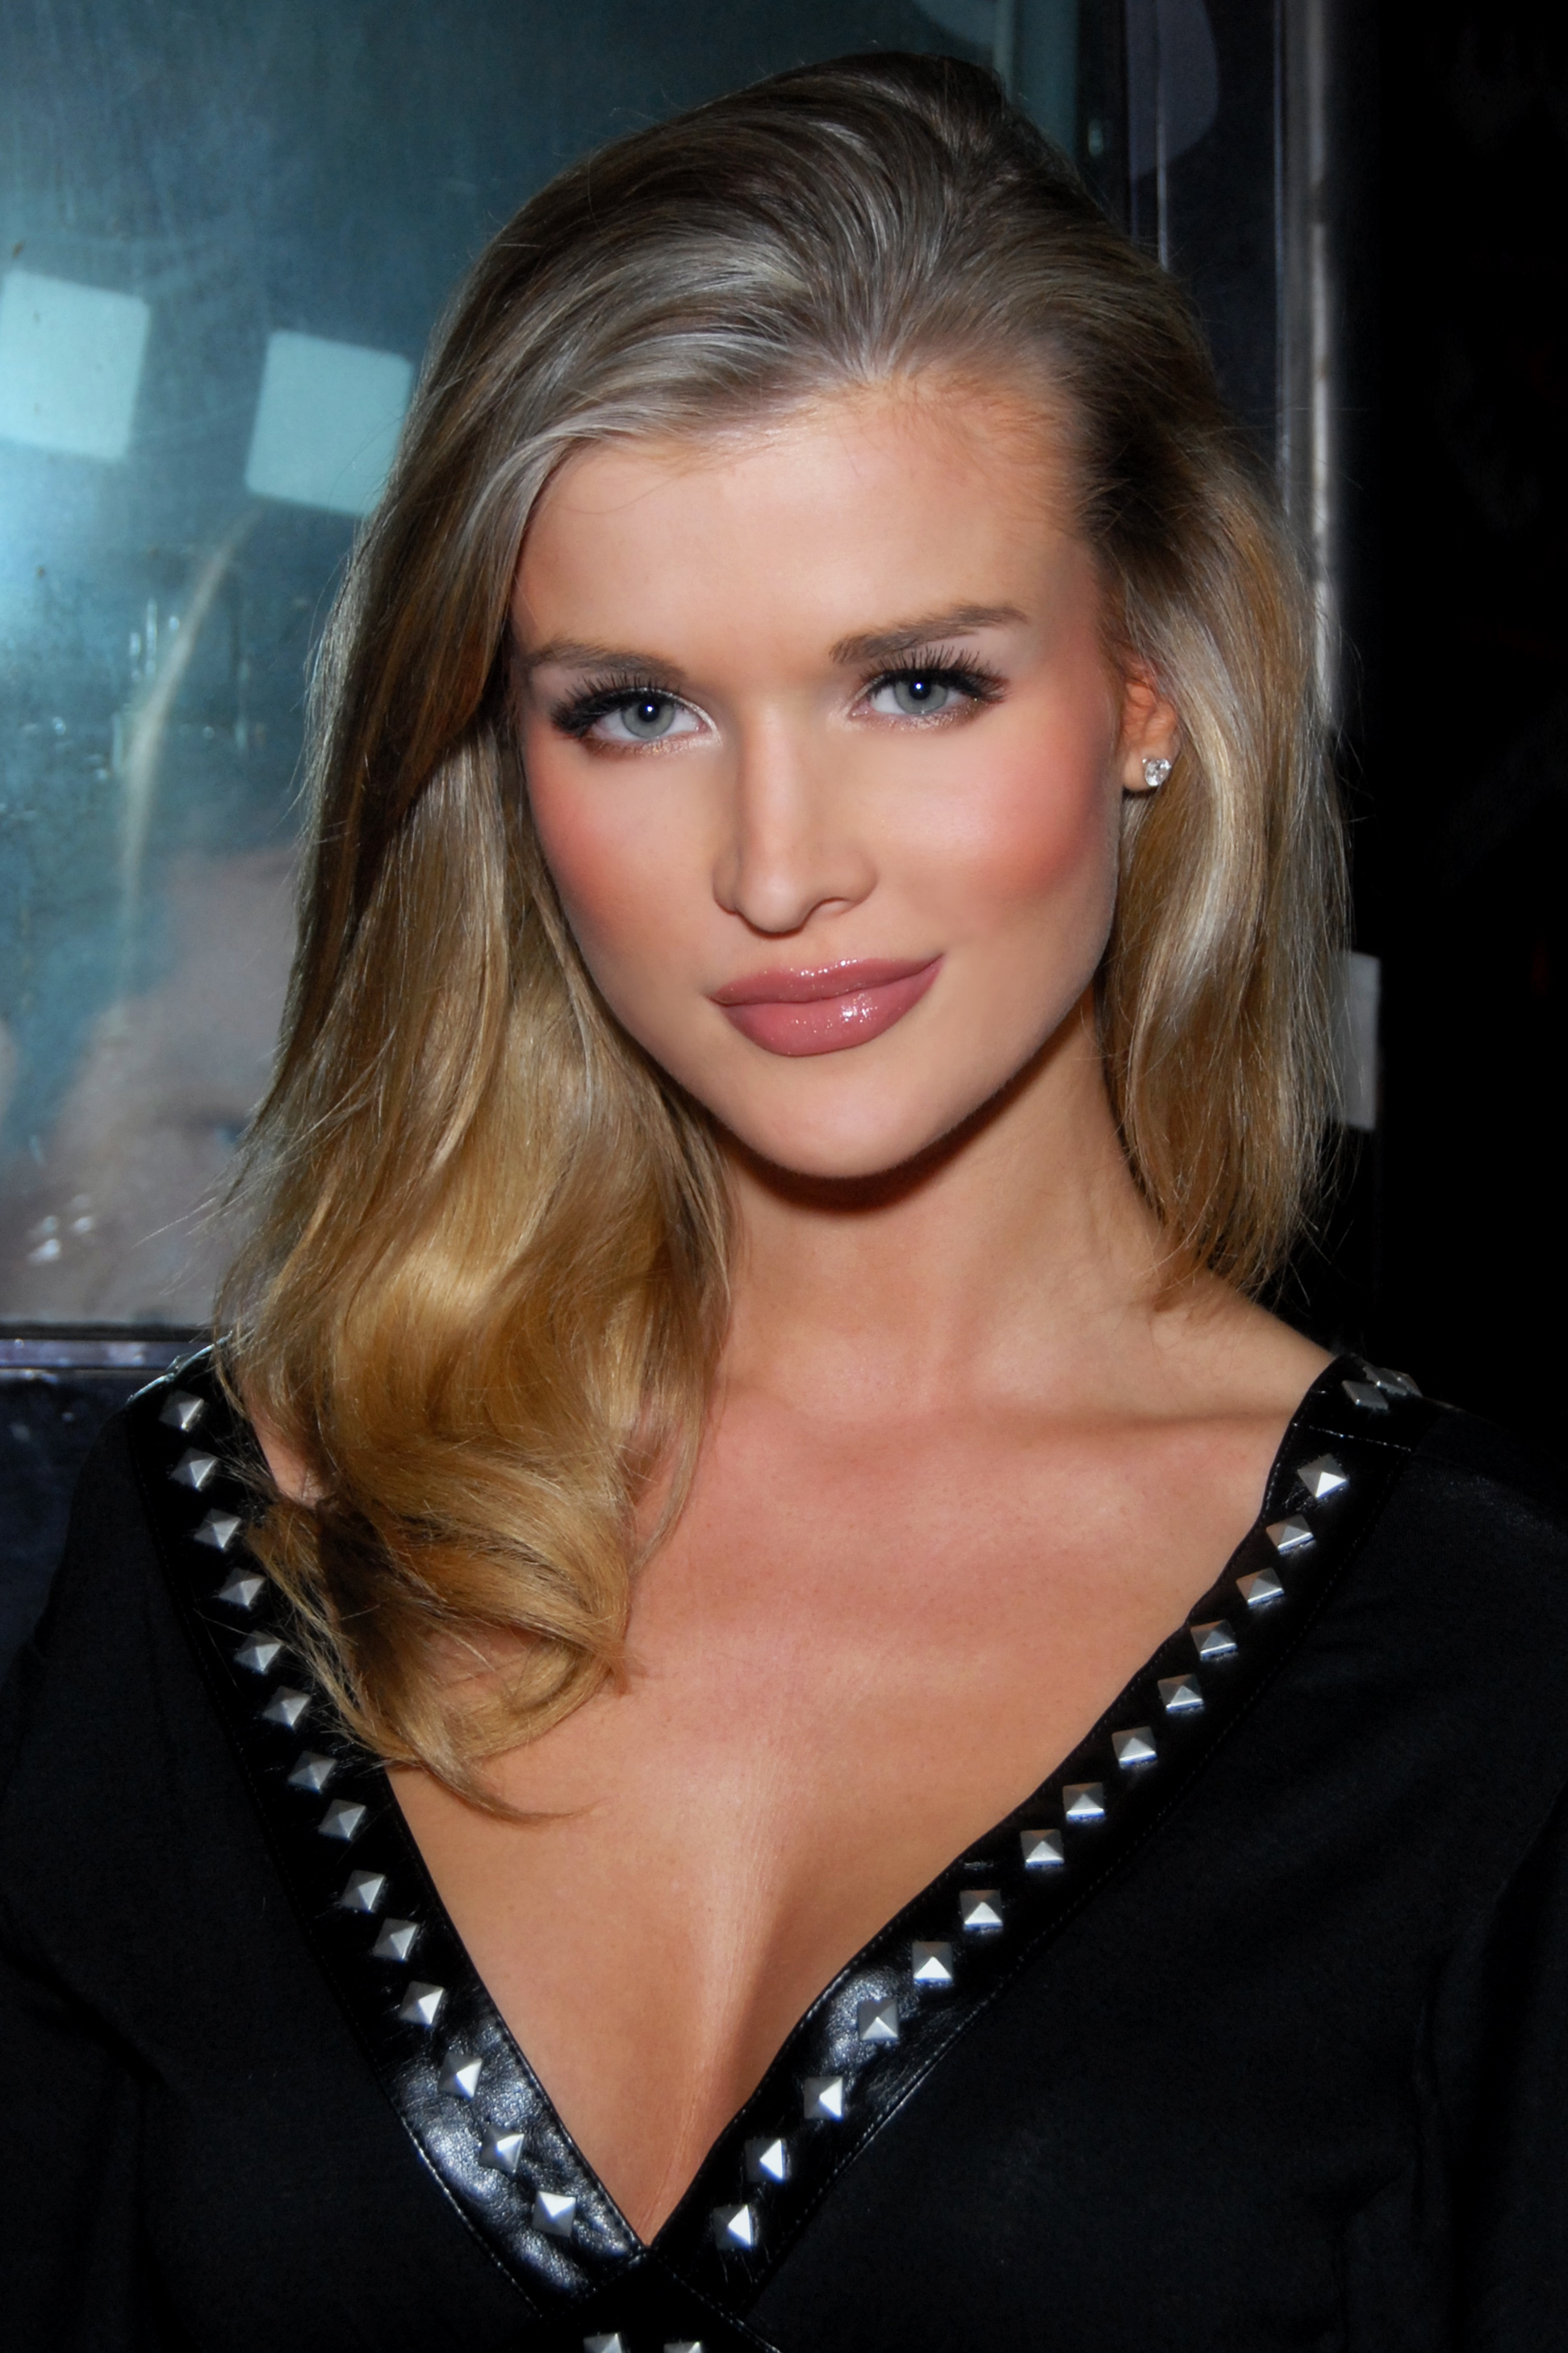 The 39-year old daughter of father Steven Krupa and mother Jolanta Krupa Joanna Krupa in 2018 photo. Joanna Krupa earned a  million dollar salary - leaving the net worth at 1 million in 2018